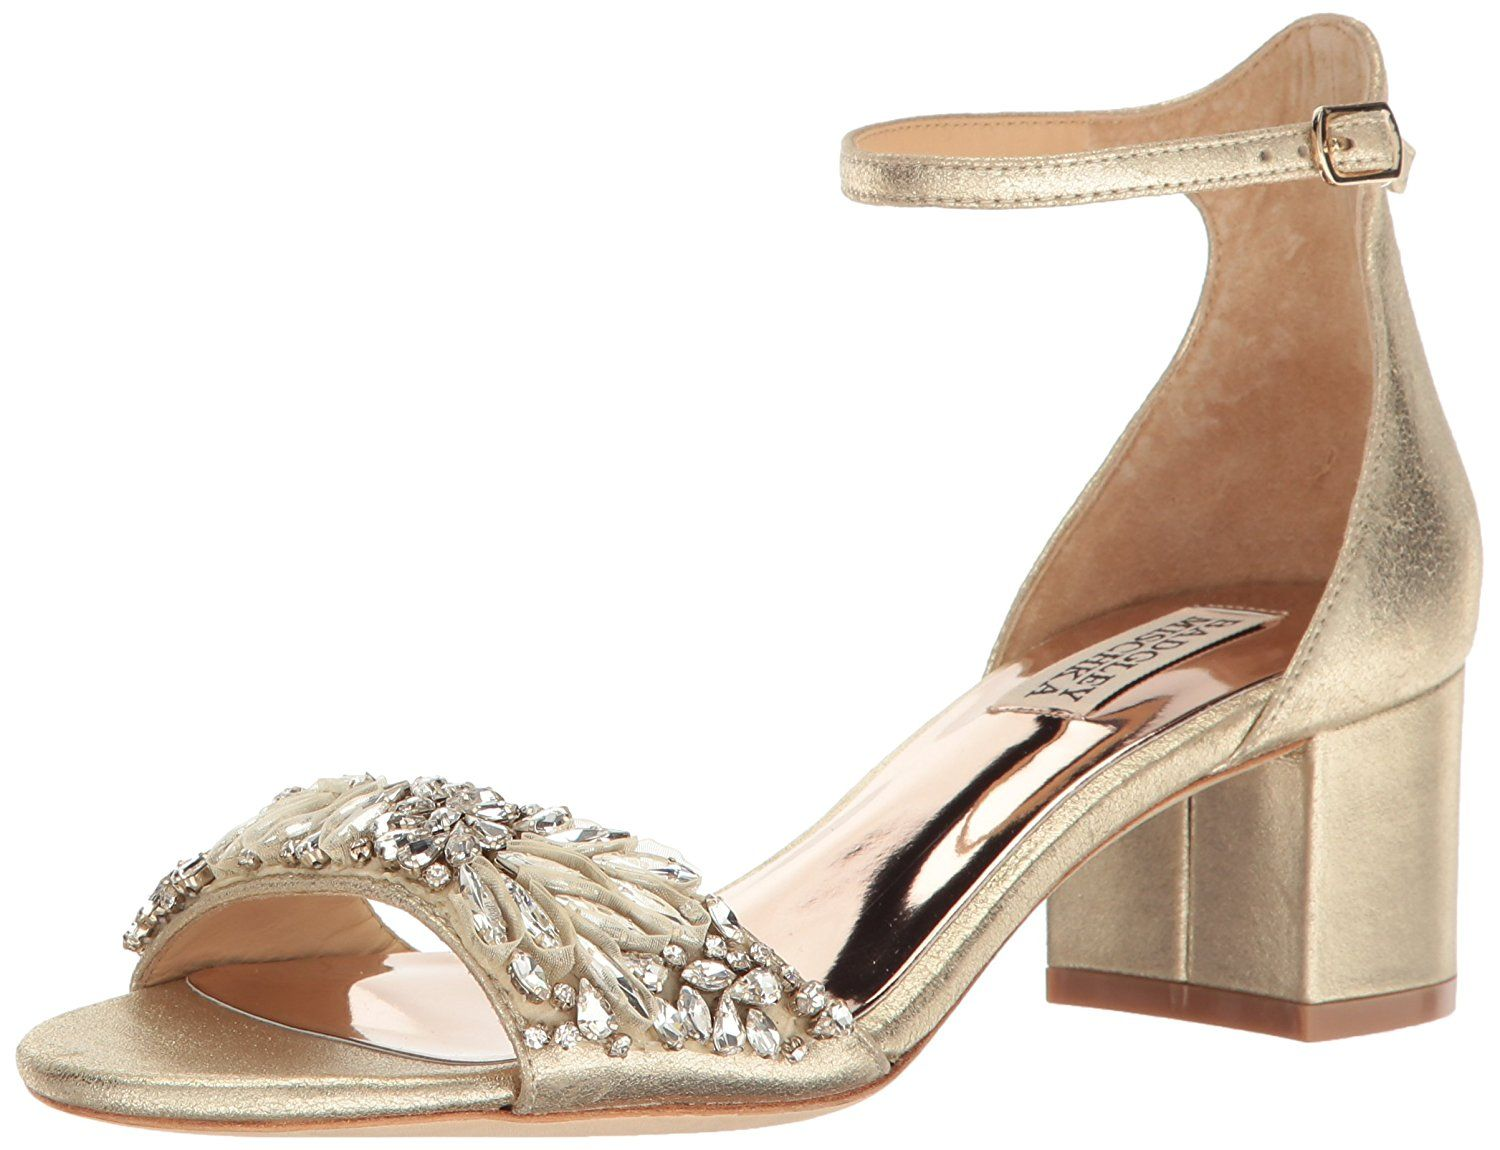 c86d16b85e84b Amazon.com: Badgley Mischka Women's Tamara Dress Sandal, Platino ...